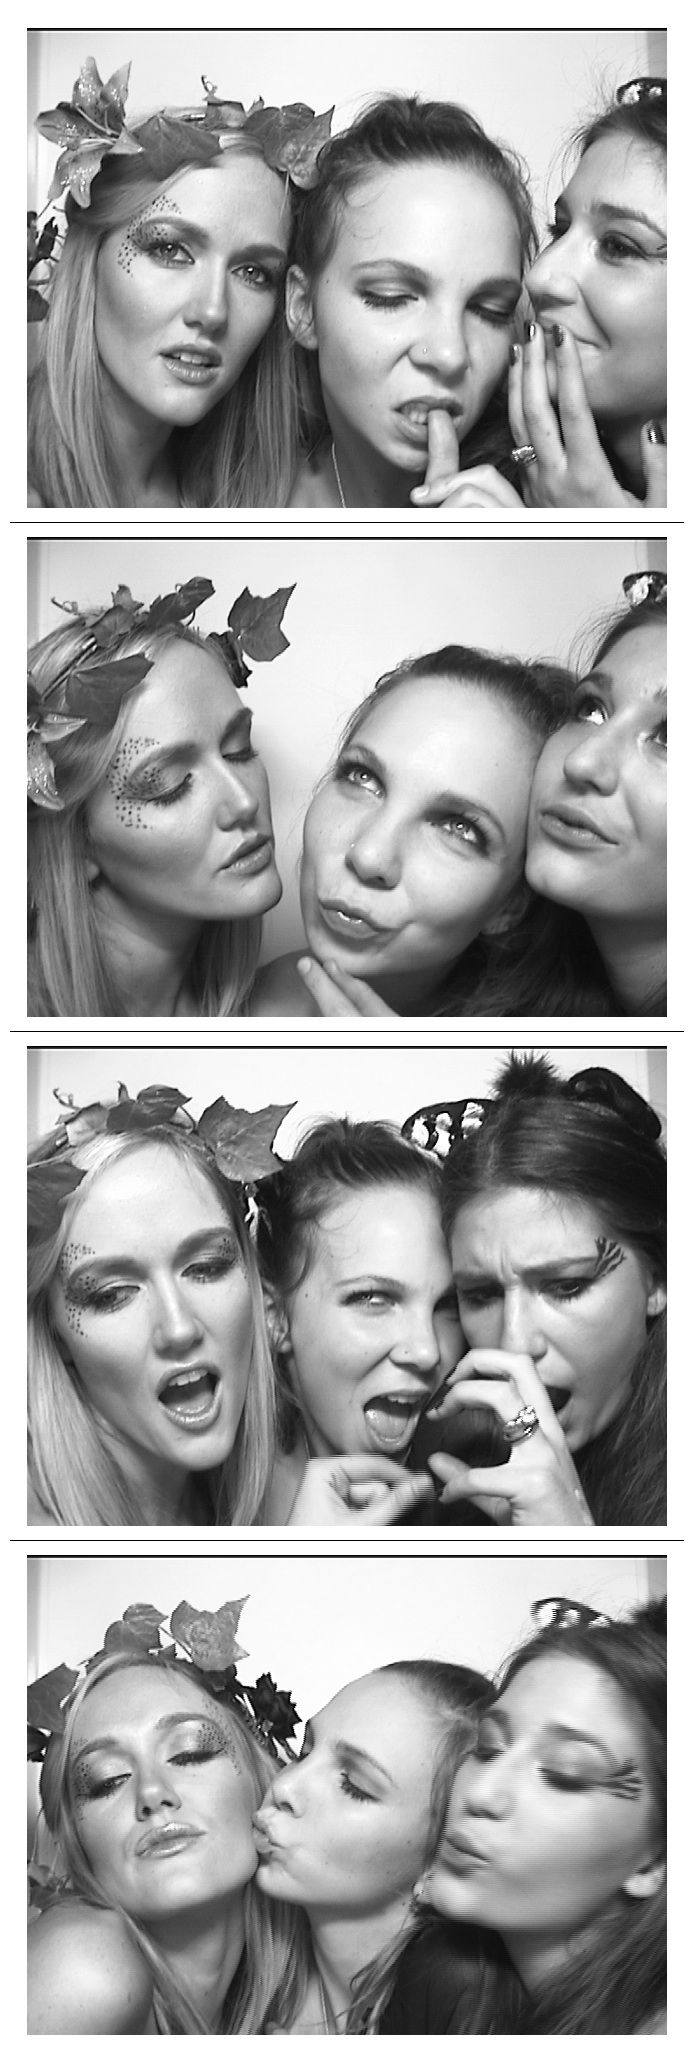 party photo booth hire   www.flashbackphotobooths.com.au